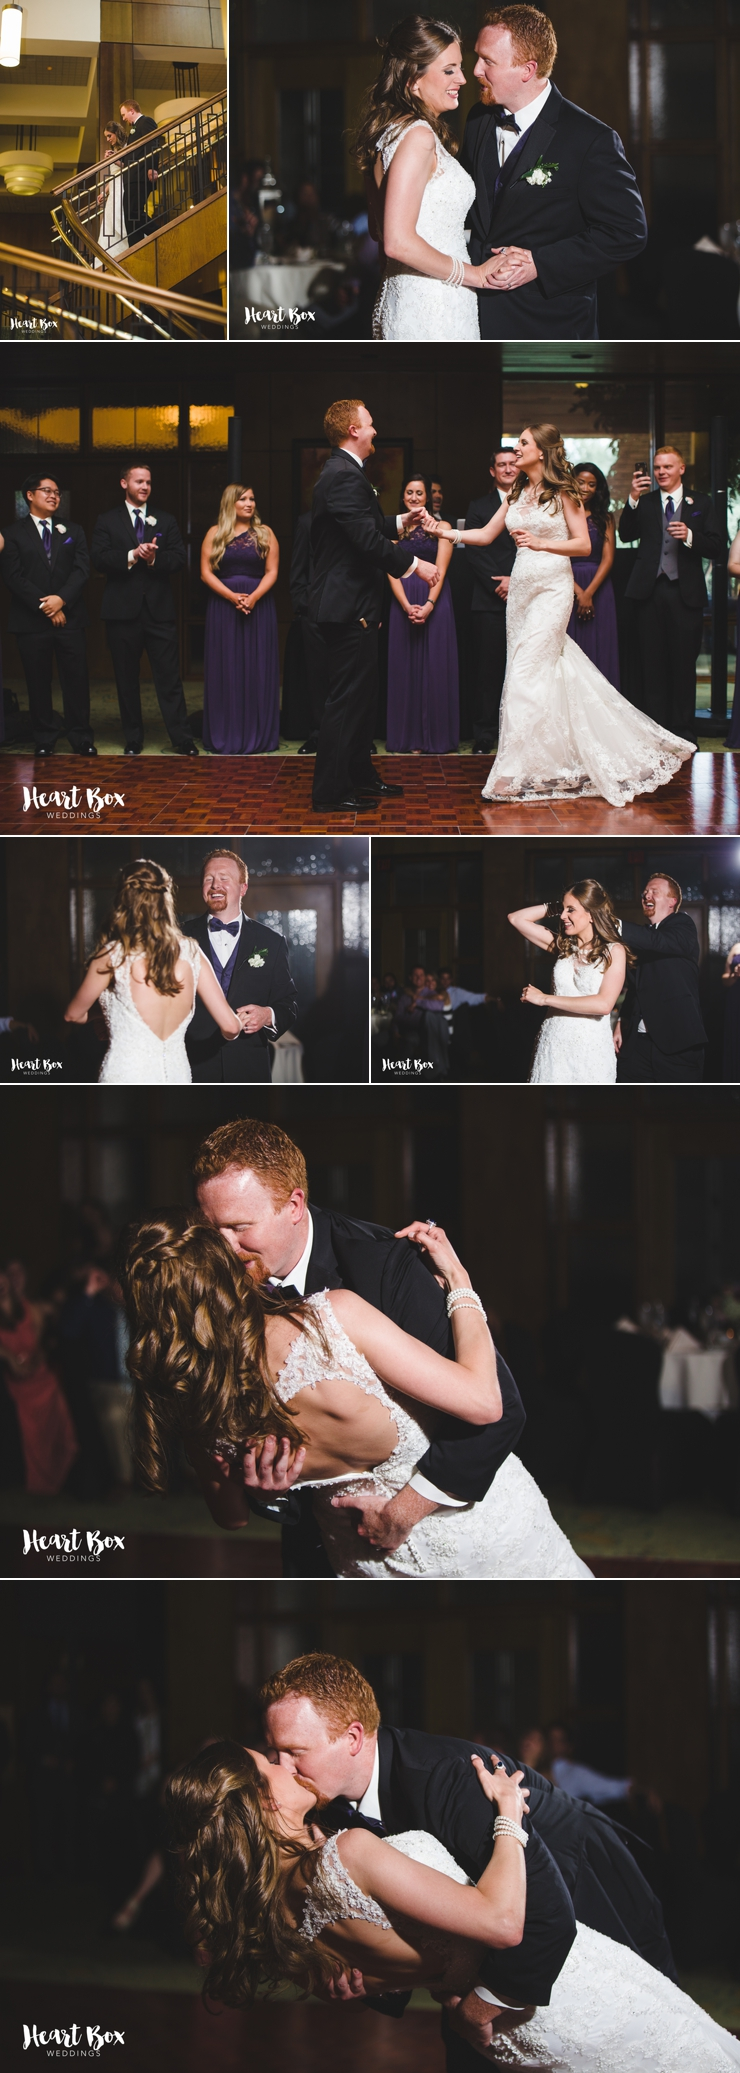 Price Wedding Blog Collages 11.jpg